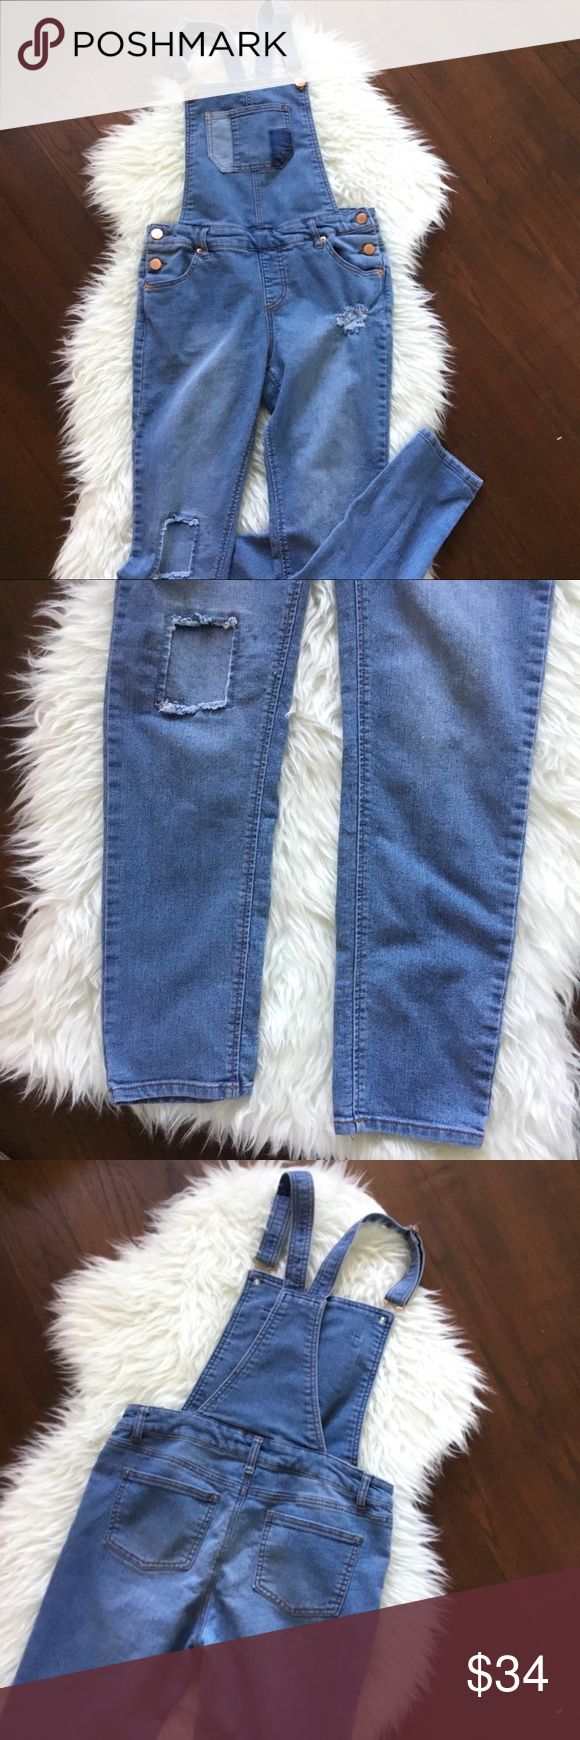 """Vintage Cherokee Denim Pants Overalls Size 30 The perfect pant overall!  • Cherokee brand  • Medium wash blue denim • Bronze colored buttons • Slightly distressing on leg area • Tag says xl, measures to a 30"""" waist • Inseam 29"""" • Fitted skinny straight leg Cherokee Jeans Overalls"""